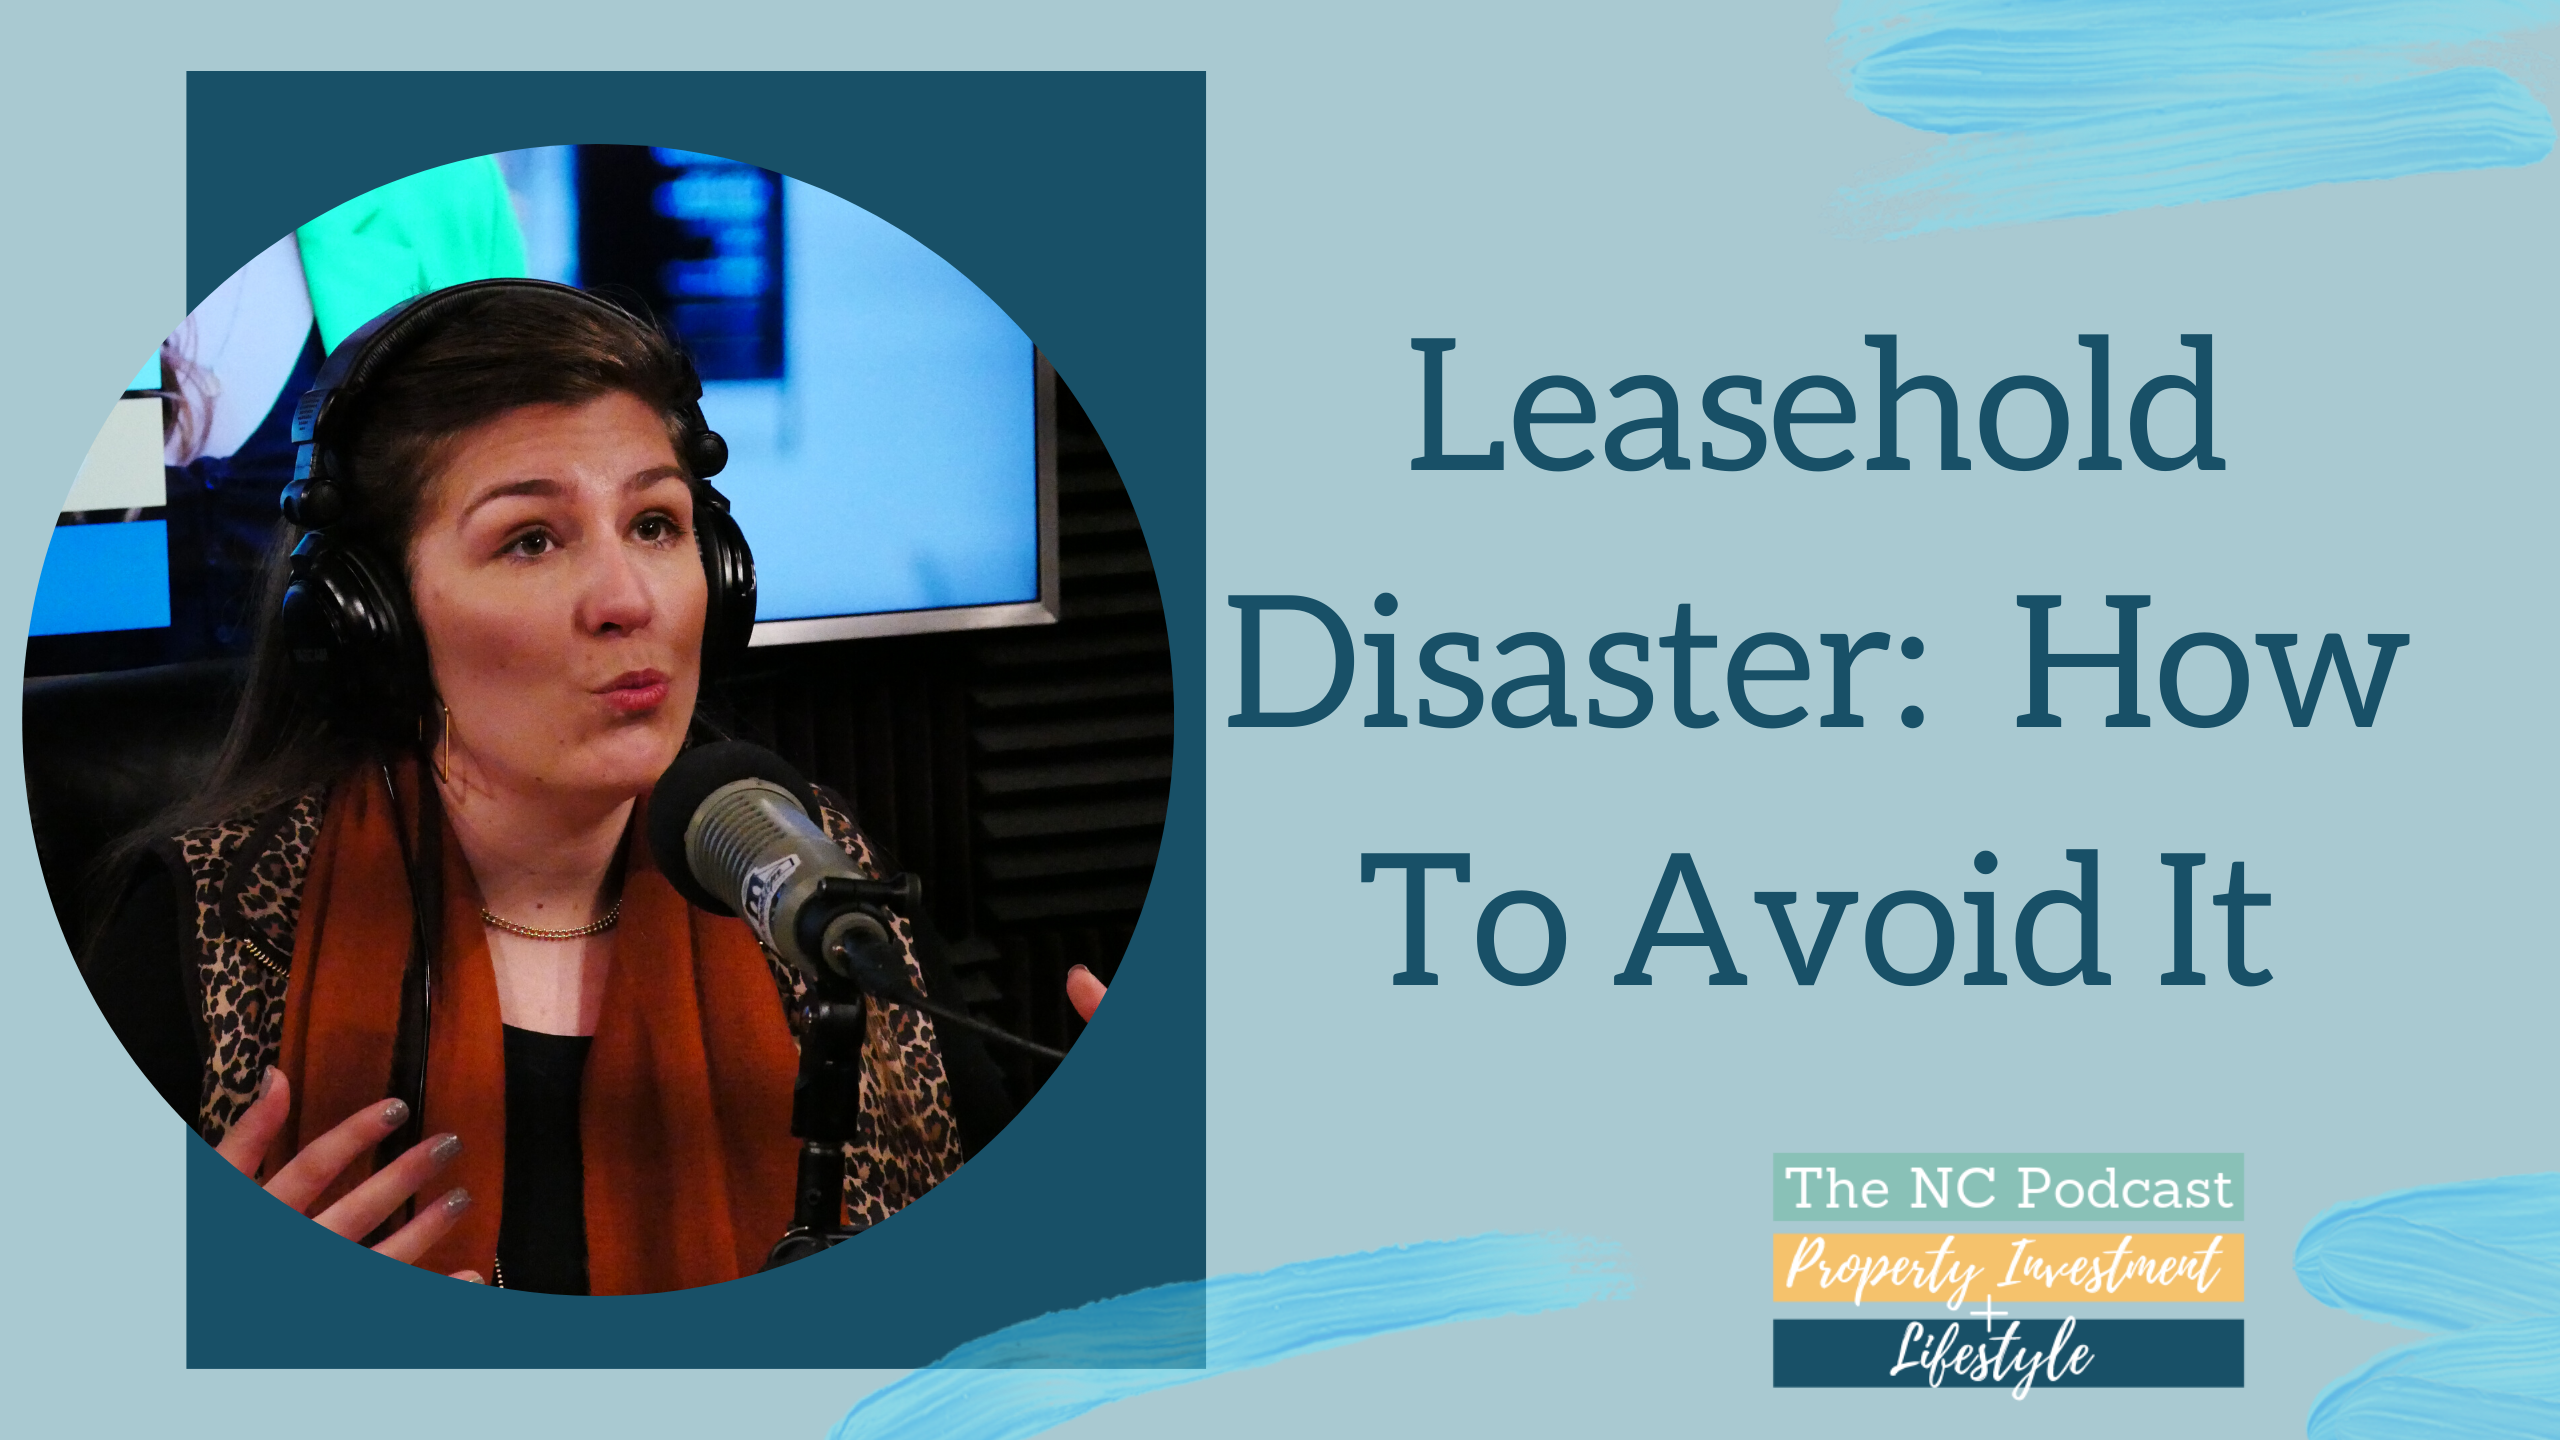 Leasehold Disaster: How to Avoid It